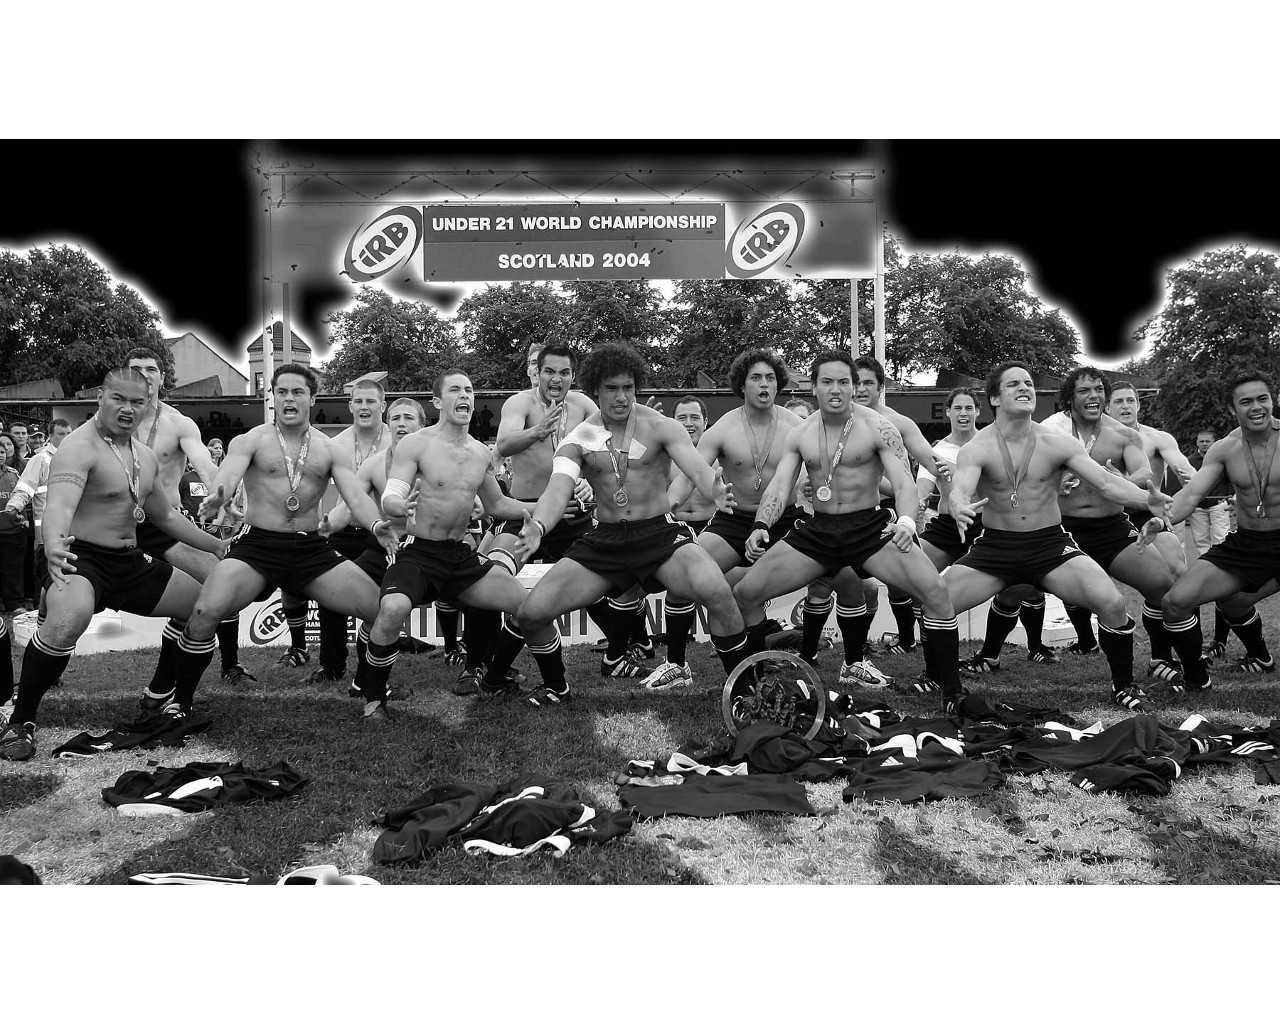 Wallpapers Sports - Leisures Rugby The Haka by the All Blacks